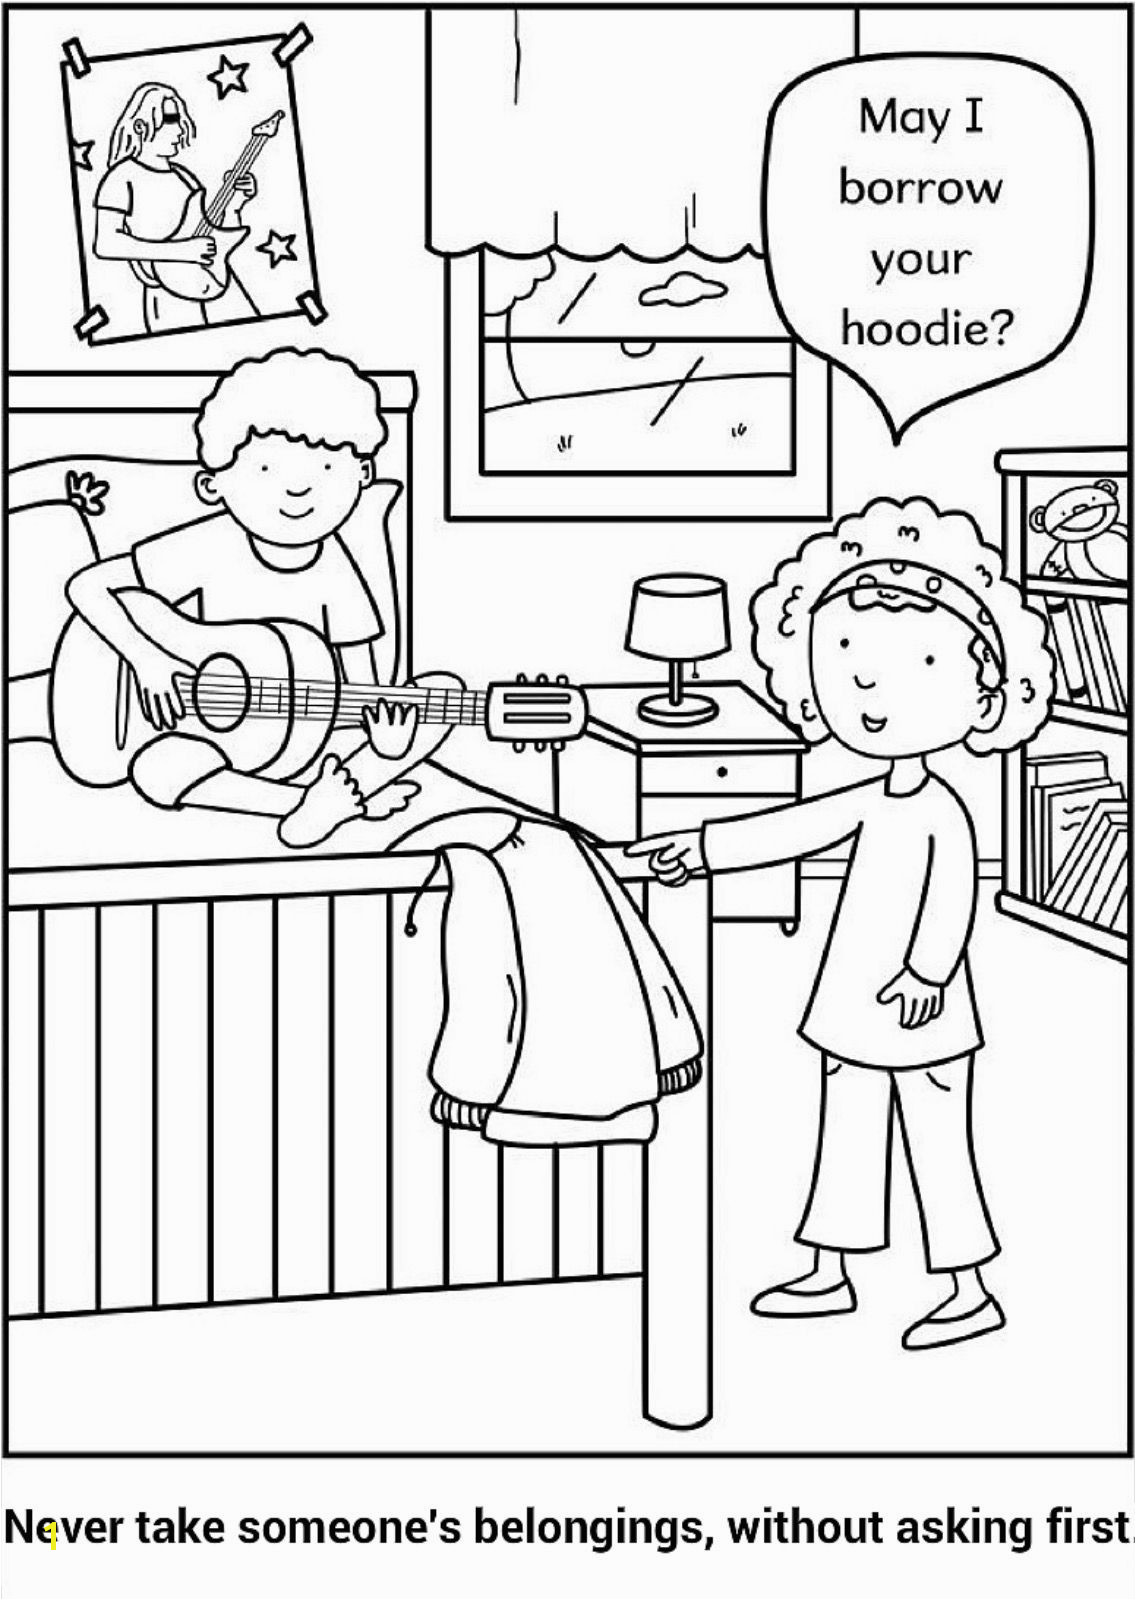 do not steal coloring page sunday school coloring pages